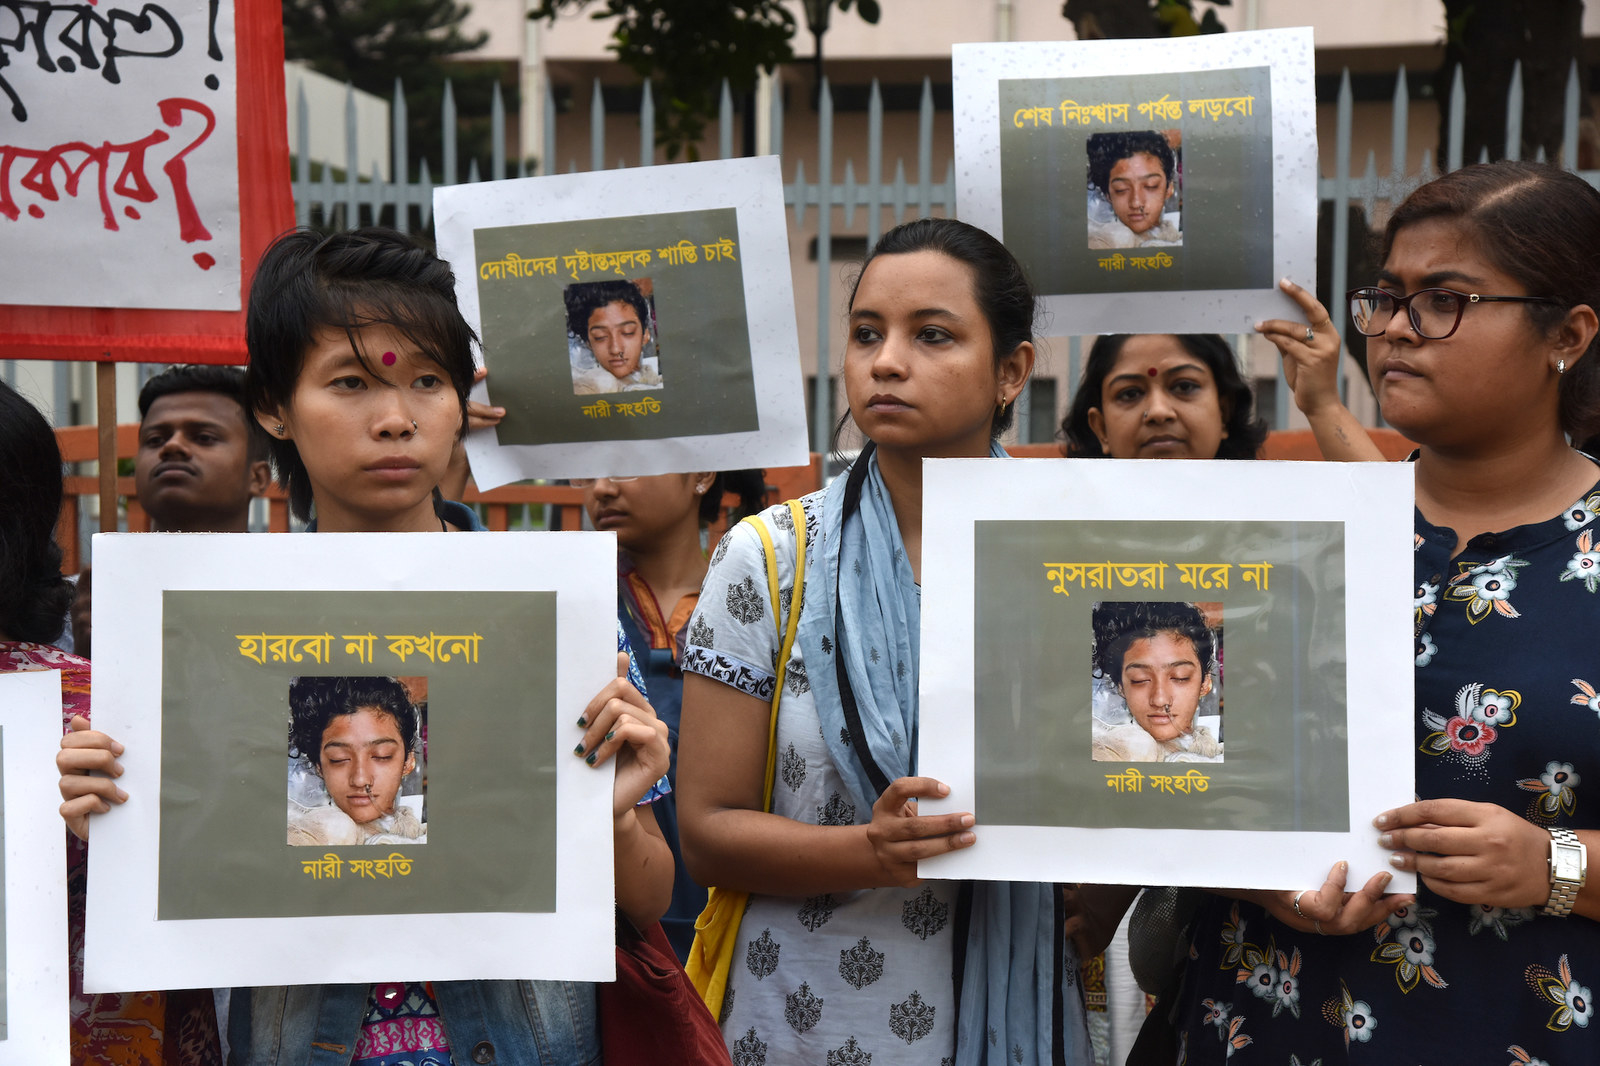 A Bangladesh Student Was Burned To Death For Reporting Sexual Harassment